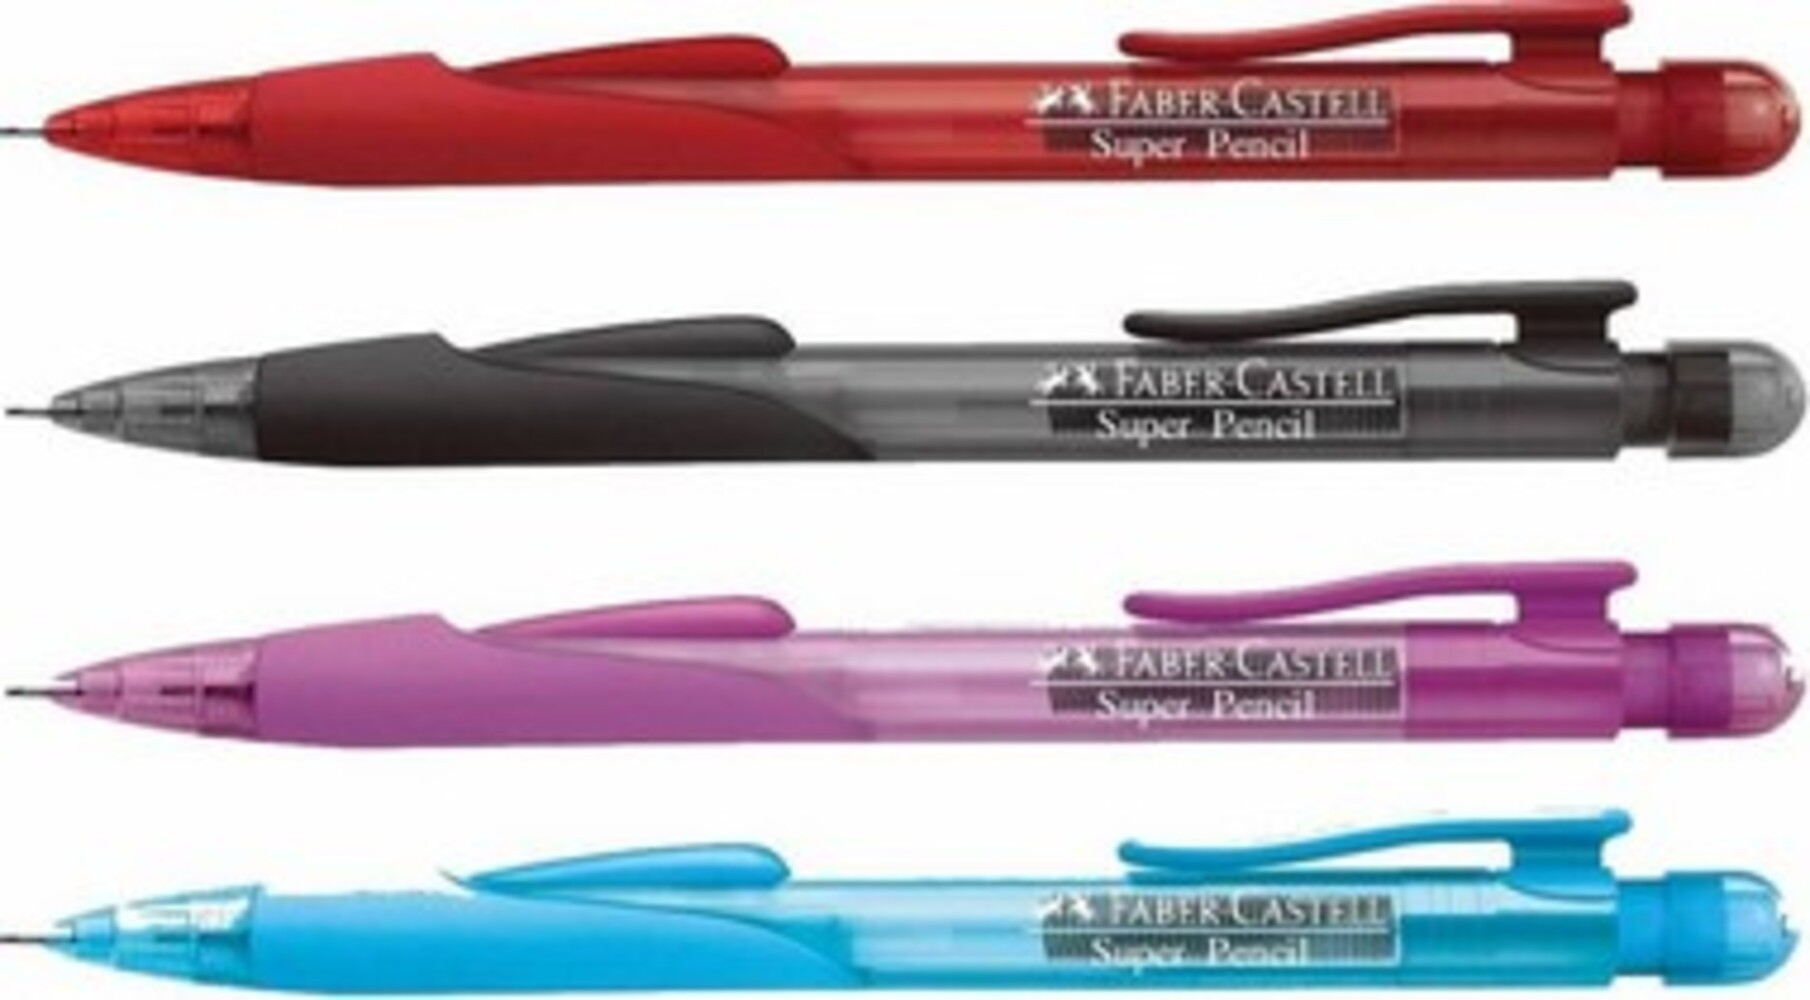 Lapiseira Portaminas Super Pencil  Faber-castell 0.7mm